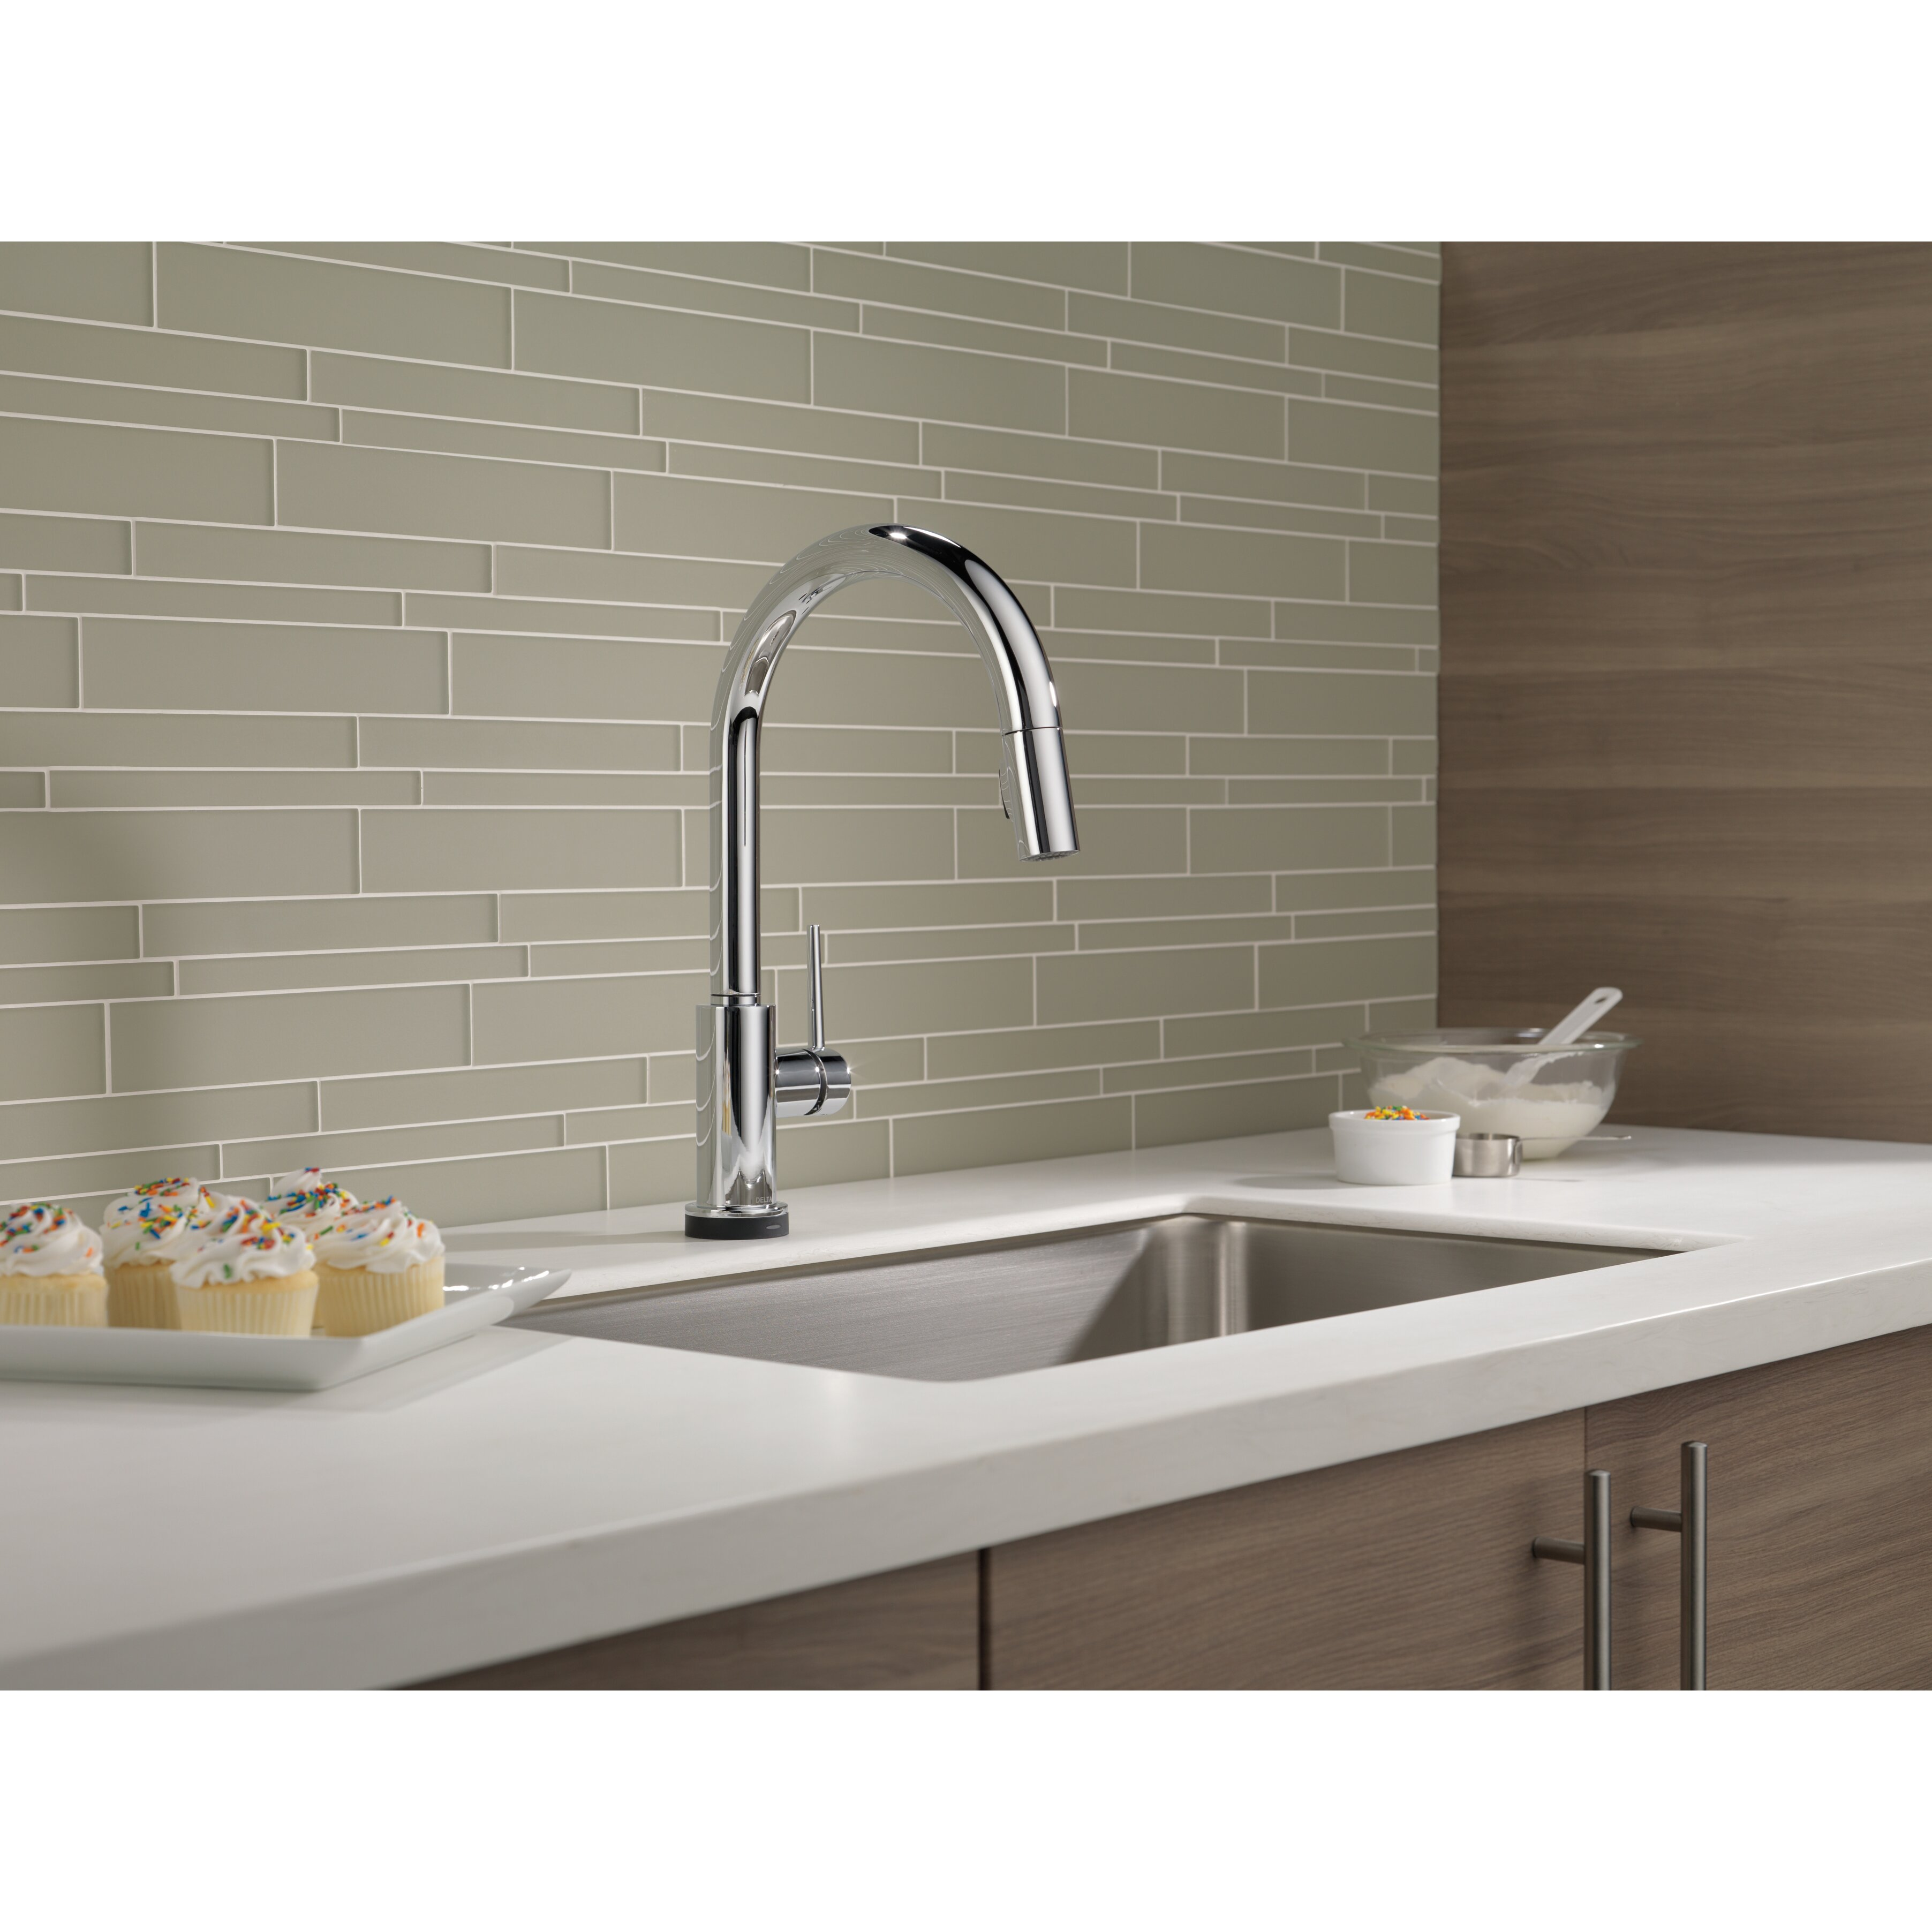 Peerless Plf Classic Single Handle Kitchen Faucet